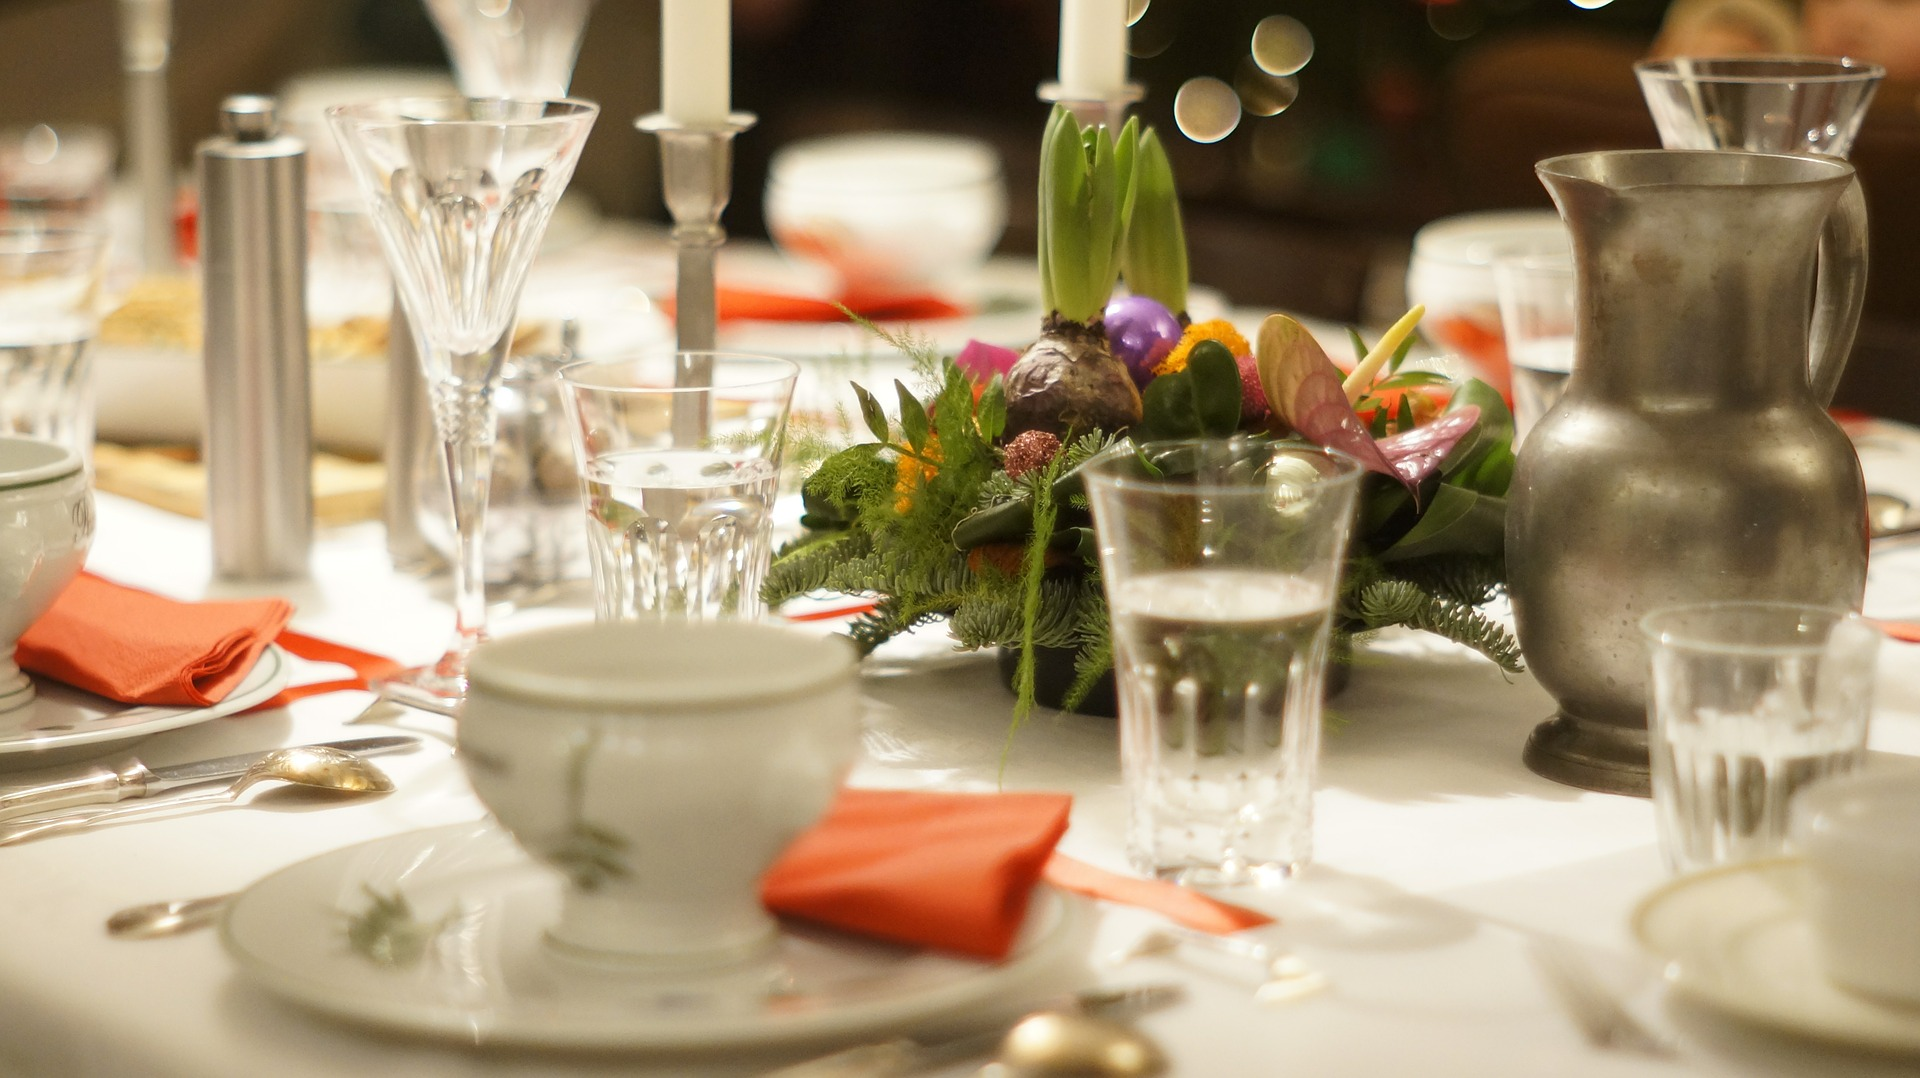 A table set for formal dining